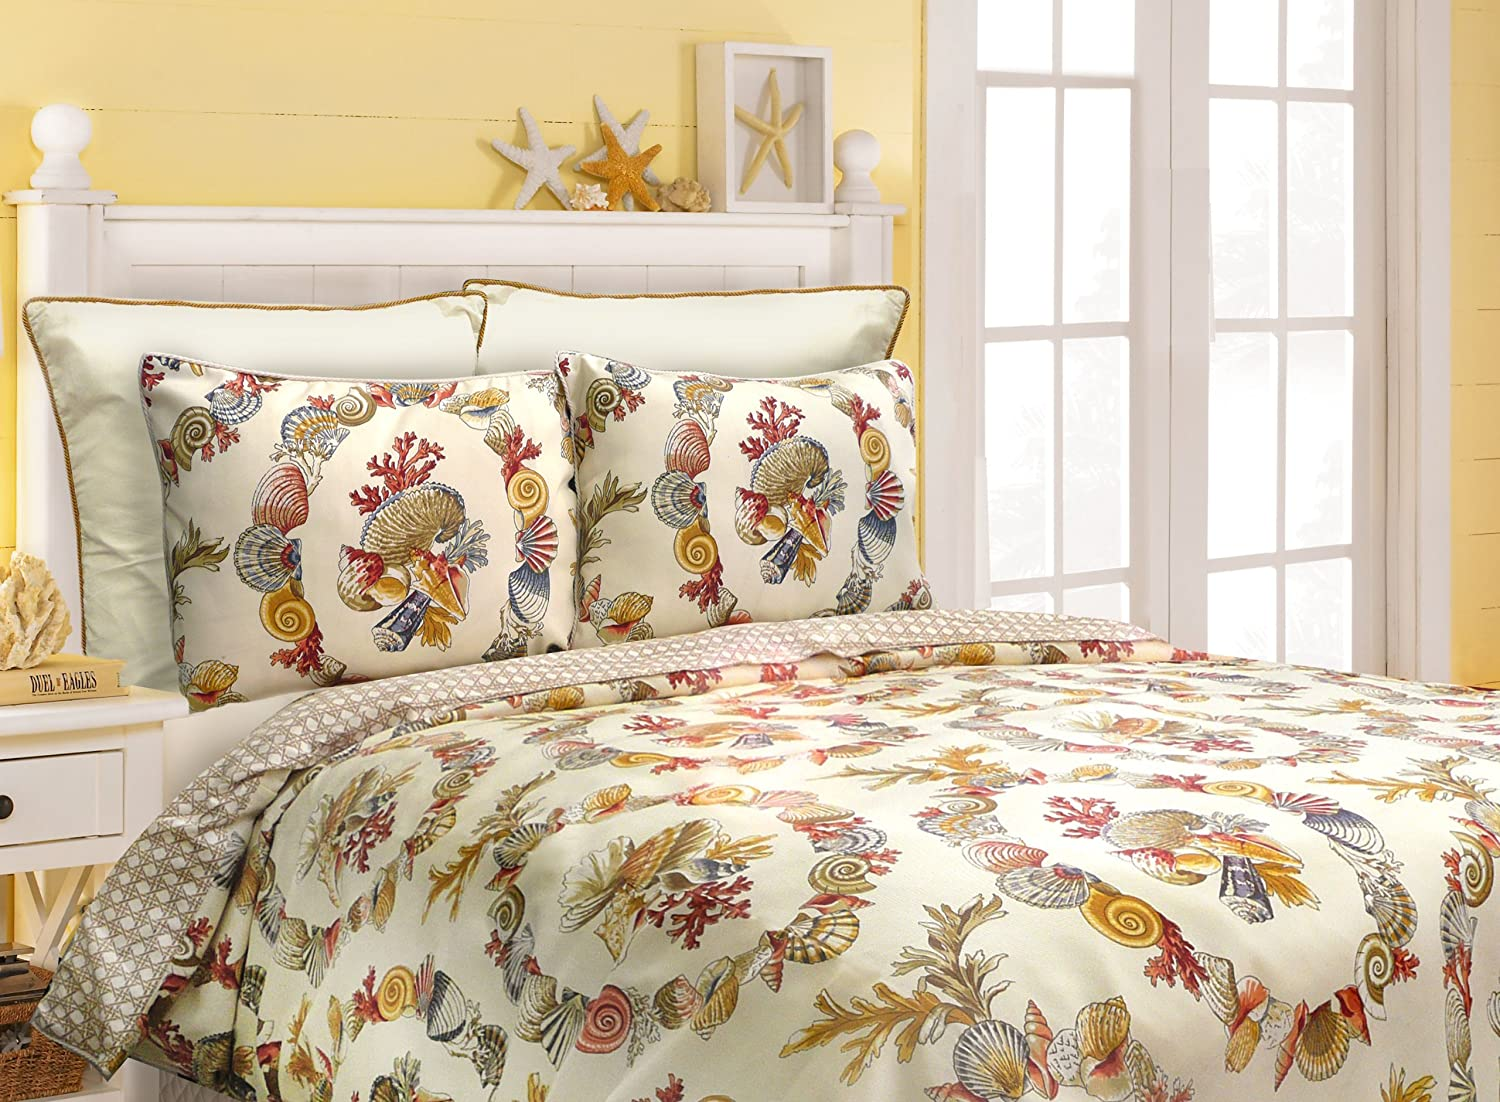 Scent-Sation Coral Wreath Comforter Set, Queen